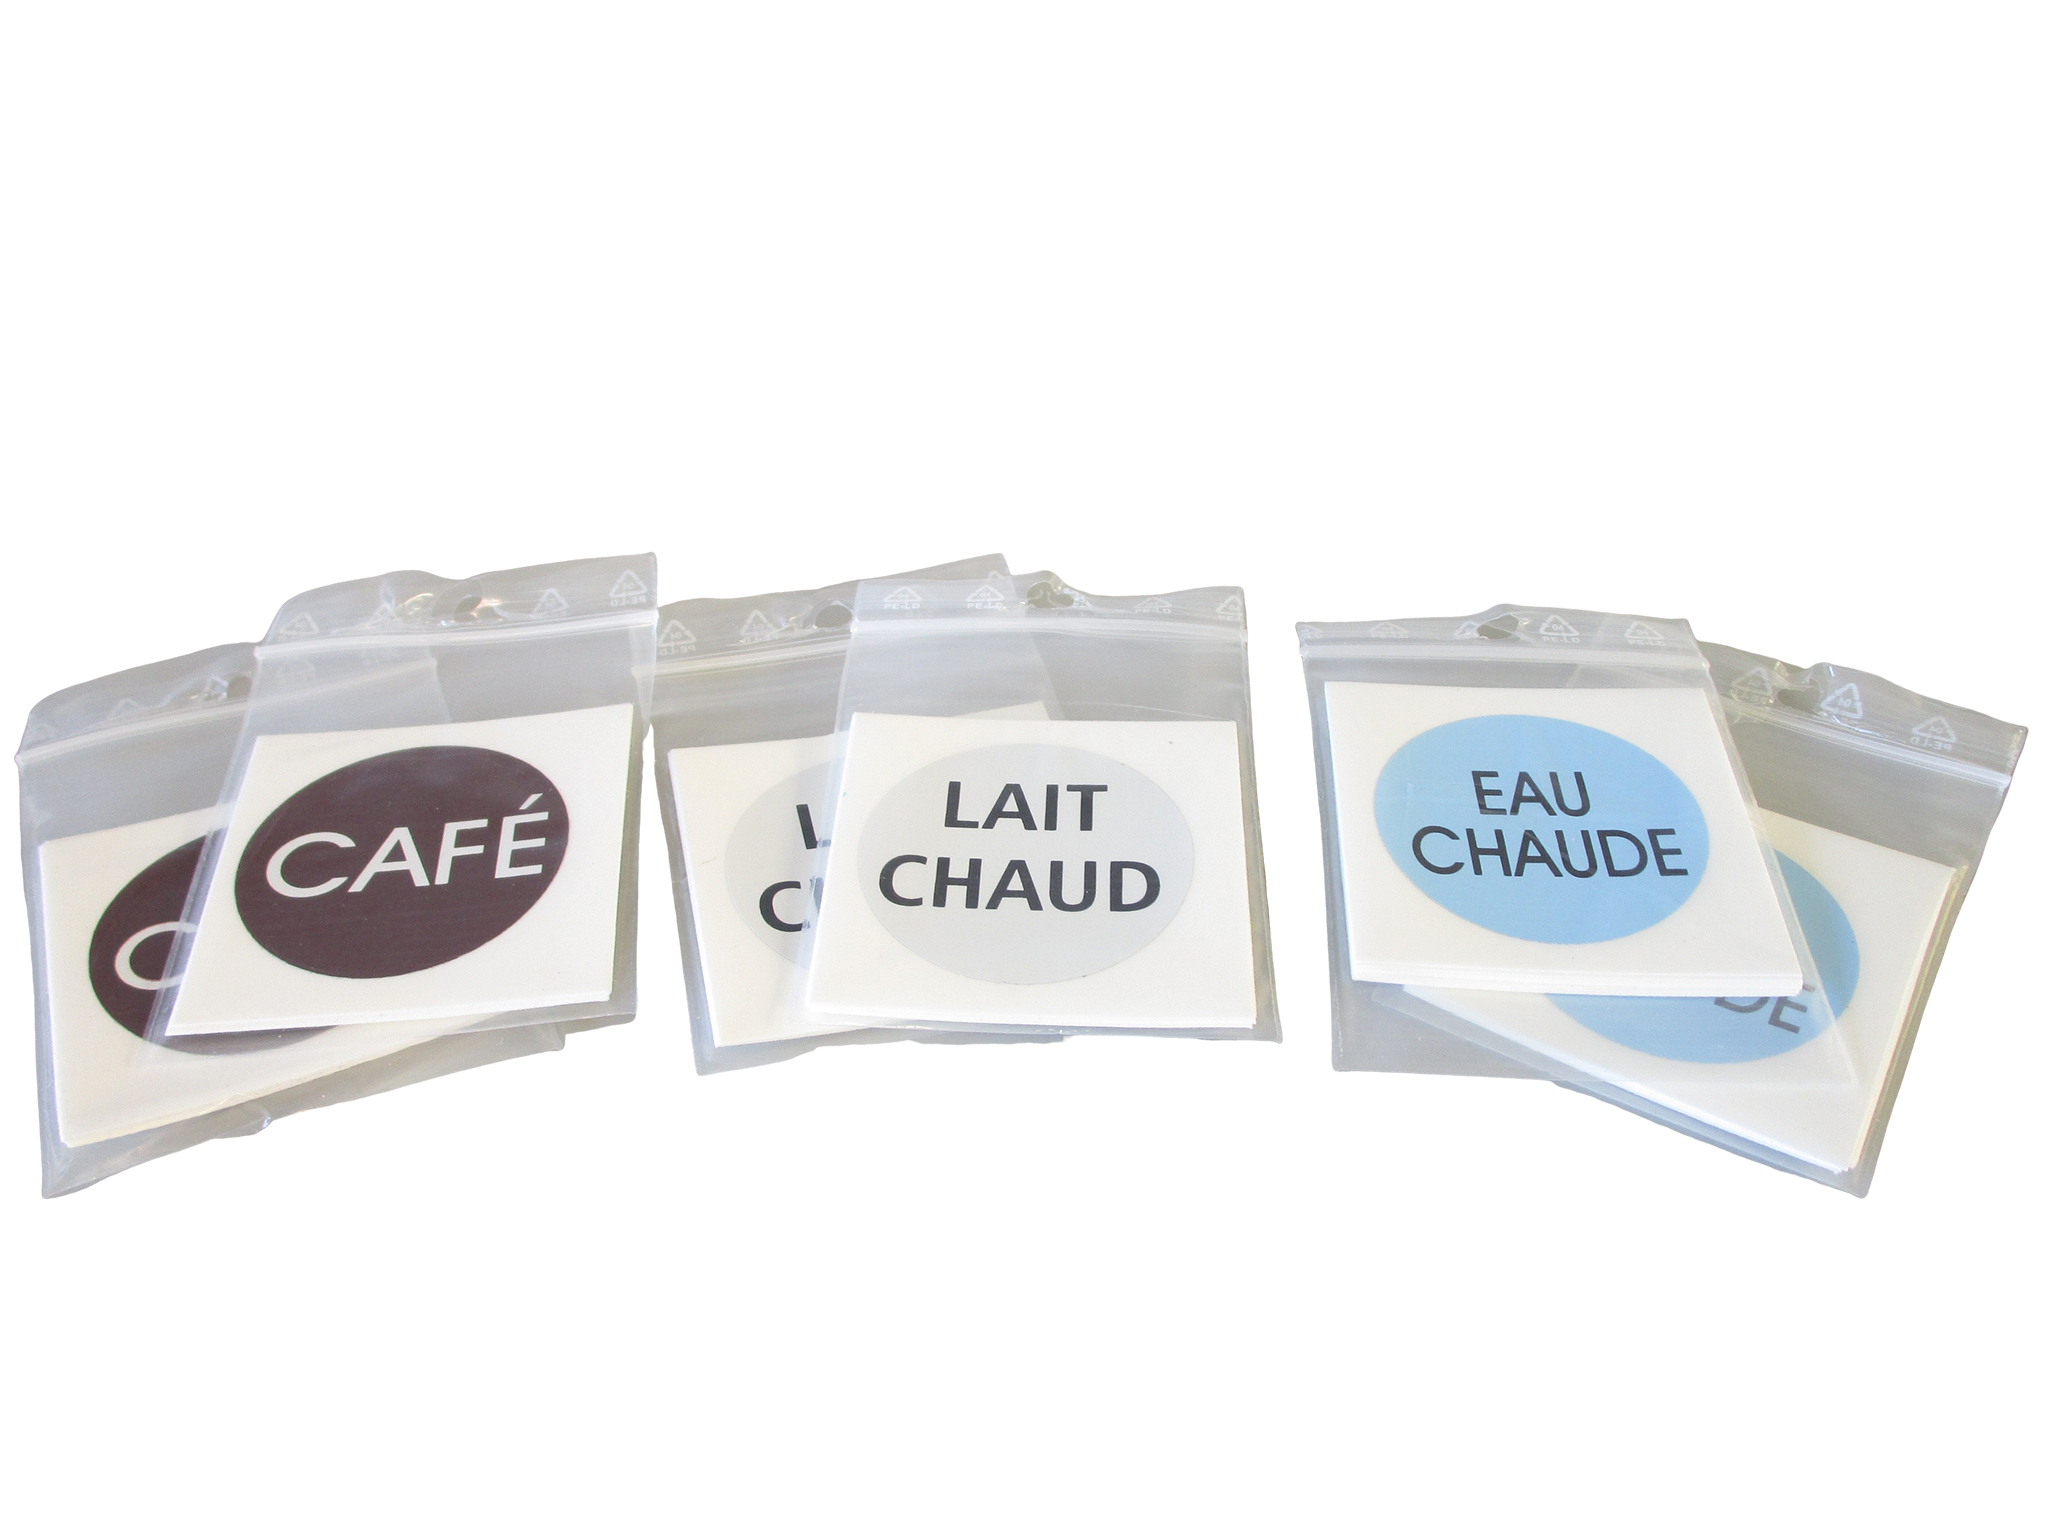 "LABEL-CAFE - Sachet de 10 étiquettes autocol. ""CAFE"" - Isobel"